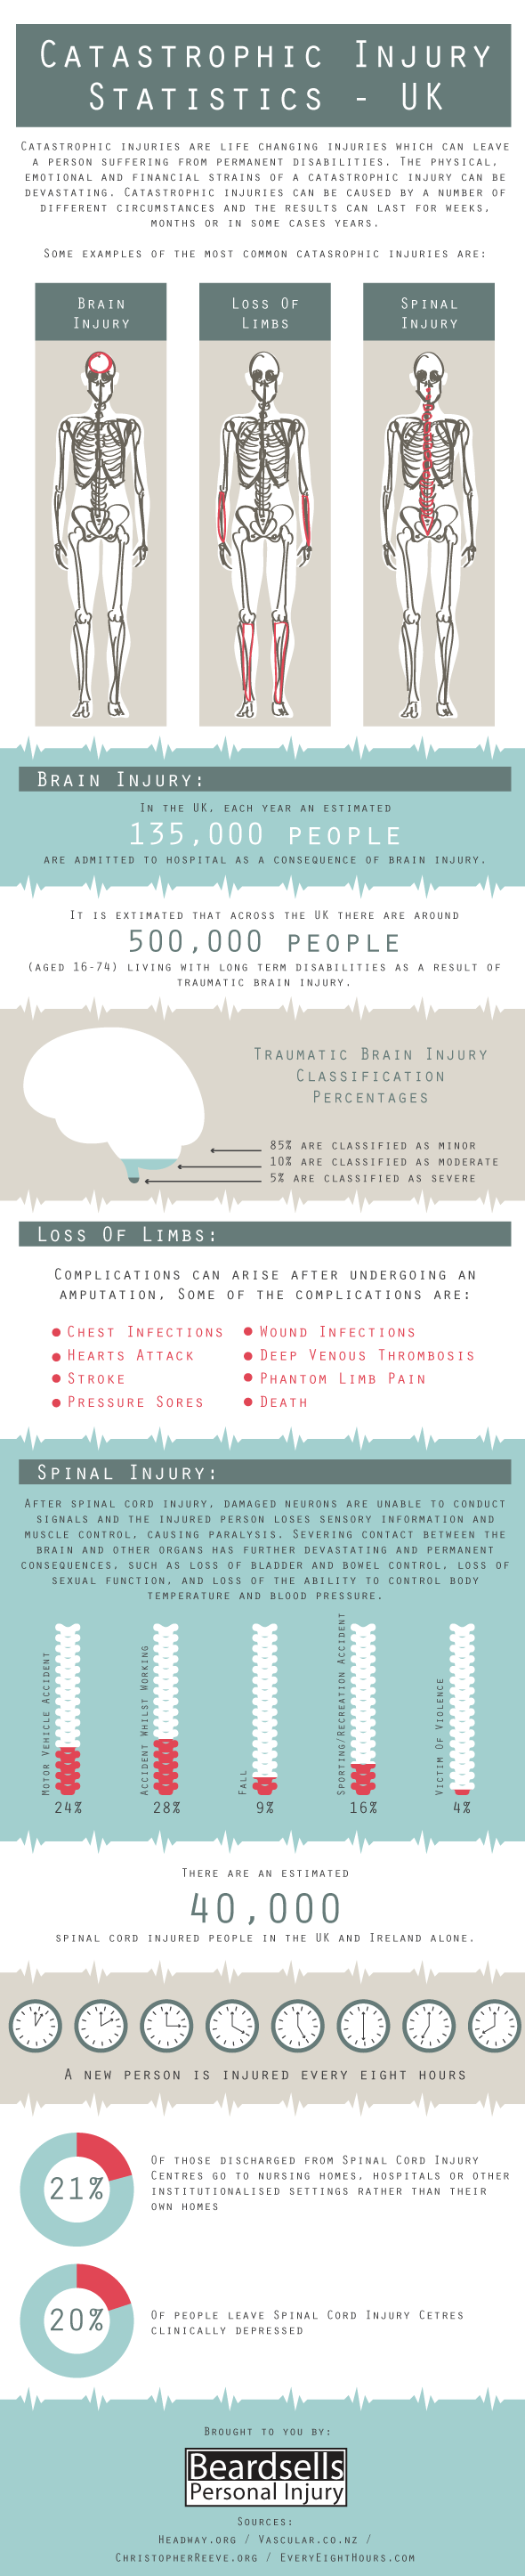 Catastrophic Injury Claims Infographic BeardsellsPersonalInjury.co.uk